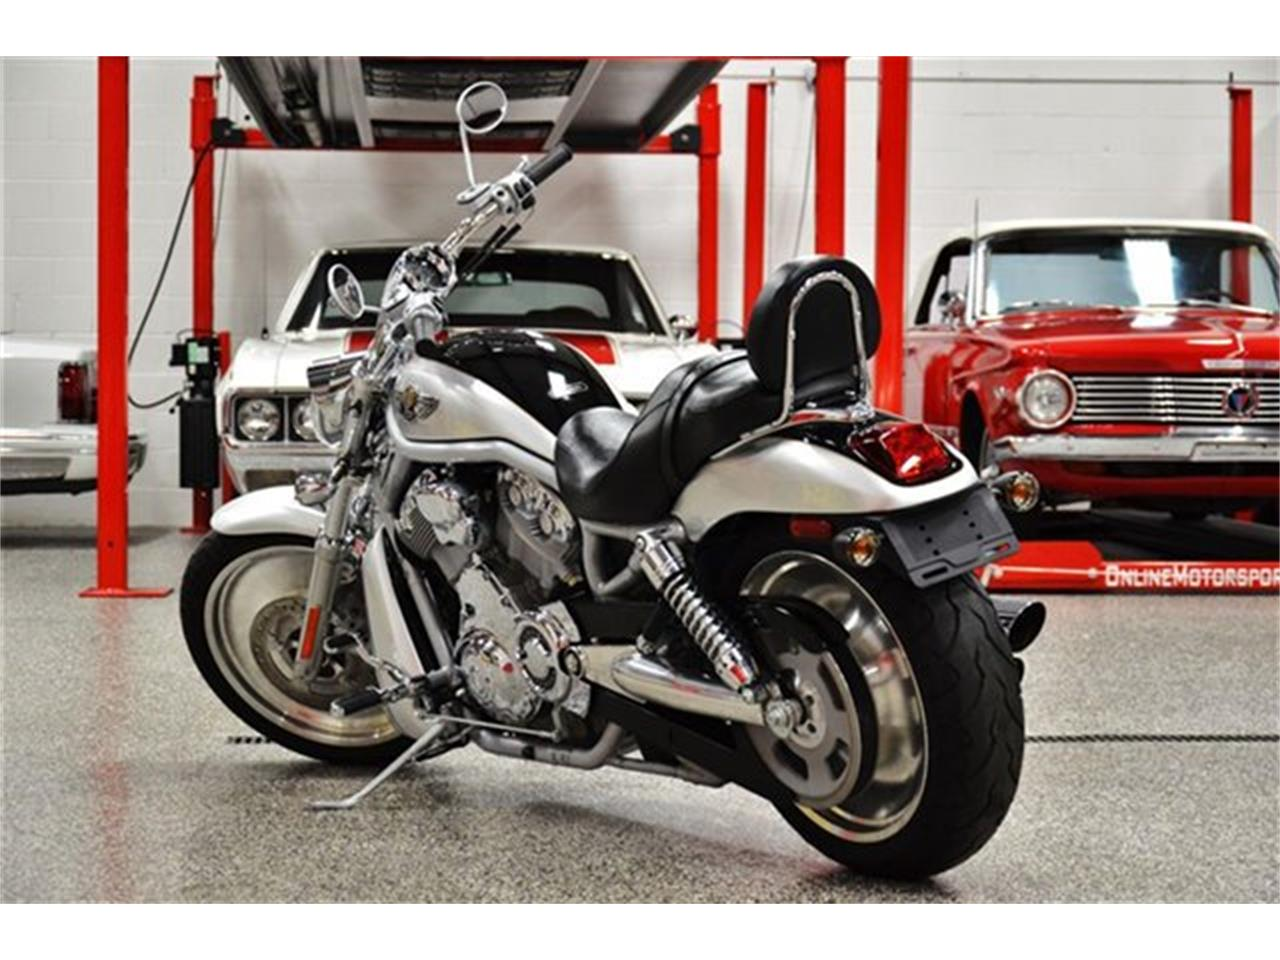 2003 Harley-Davidson VRSC for sale in Plainfield, IL – photo 5